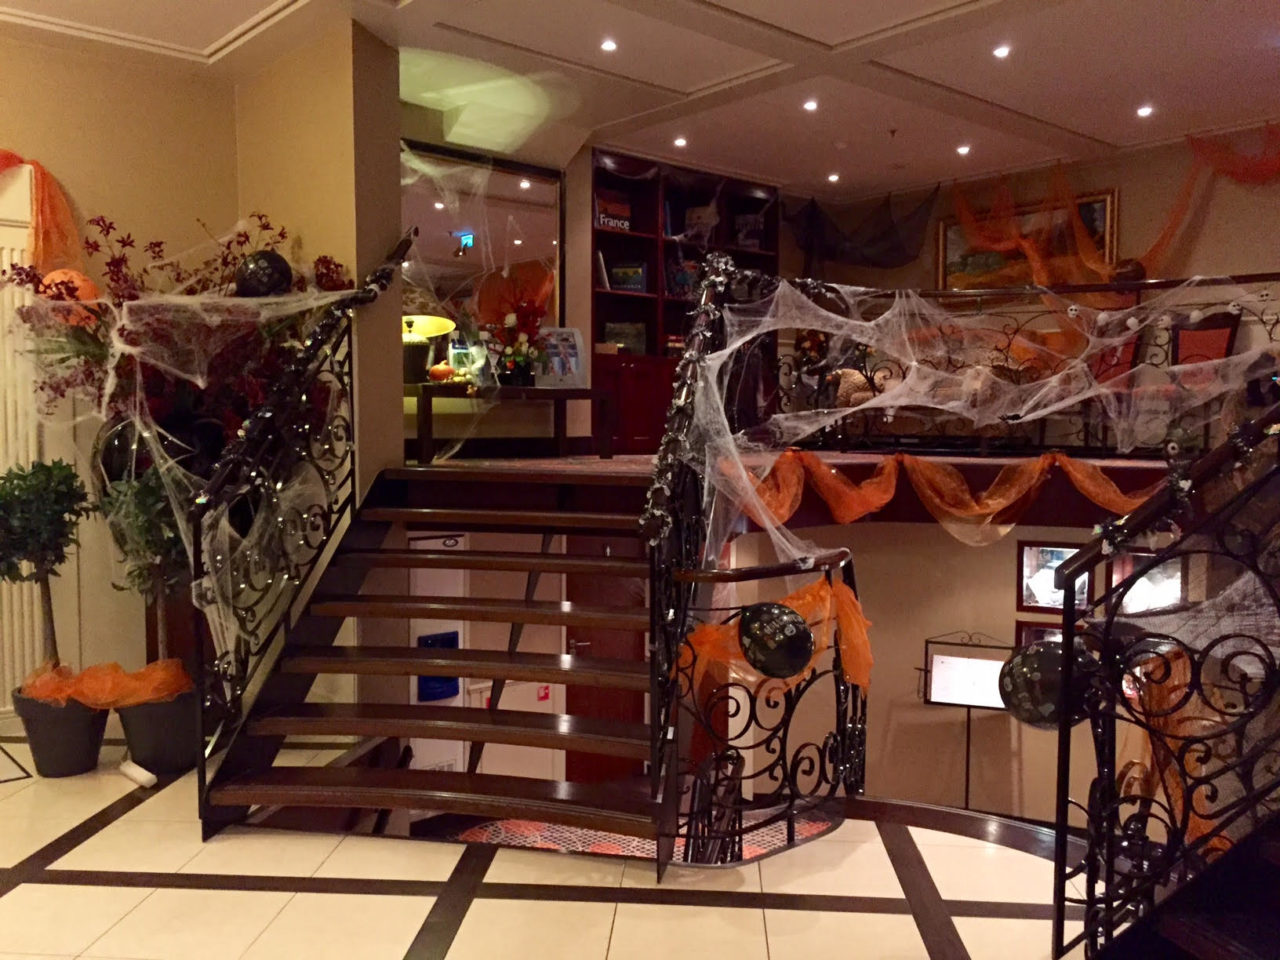 AMALegro river cruise ship dressed up for Halloween night (Paris and Normandie AMAWaterways Cruise)